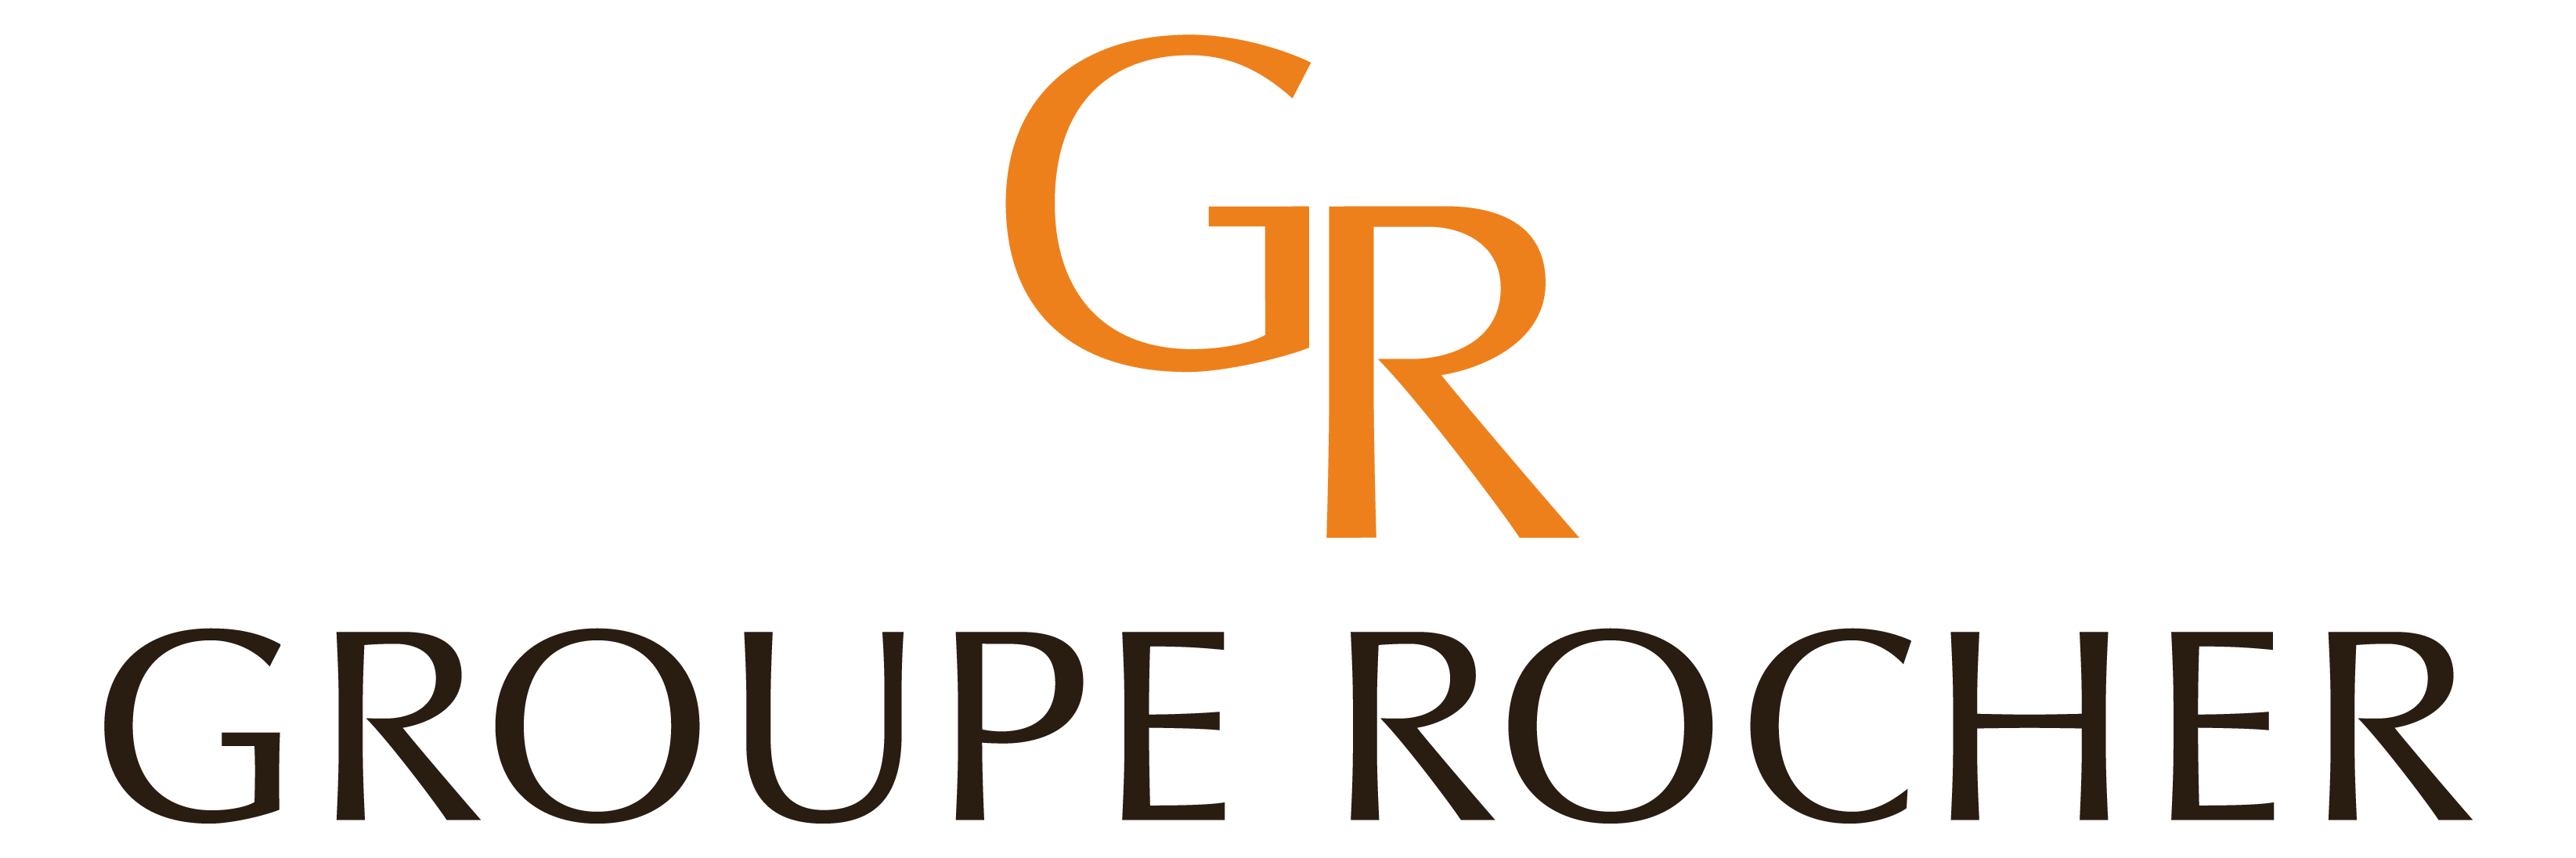 Image result for groupe rocher logo png -stock -site:123rf.* -site:gettyimages.* -site:fotolia.* -site:dreamstime.* -site:photospin.* -site:fotolibra.* -site:visualphotos.* -site:depositphotos.* -site:profimedia.* -site:clipartof.* -site:colourbox.* -site:pixmac.* -site:inmagine.* -site:cutcaster.* -site:oneinhundred.* -site:clipartoday.* -site:yaymicro.* -site:graphicleftovers.* -site:mostphotos.* -site:featurepics.* -site:masterfile.* -site:pixoto.* -site:clipdealer.* -site:hdimagelib.* -site:fotosearch.* -site:warmpicture.* -site:mediafocus.*